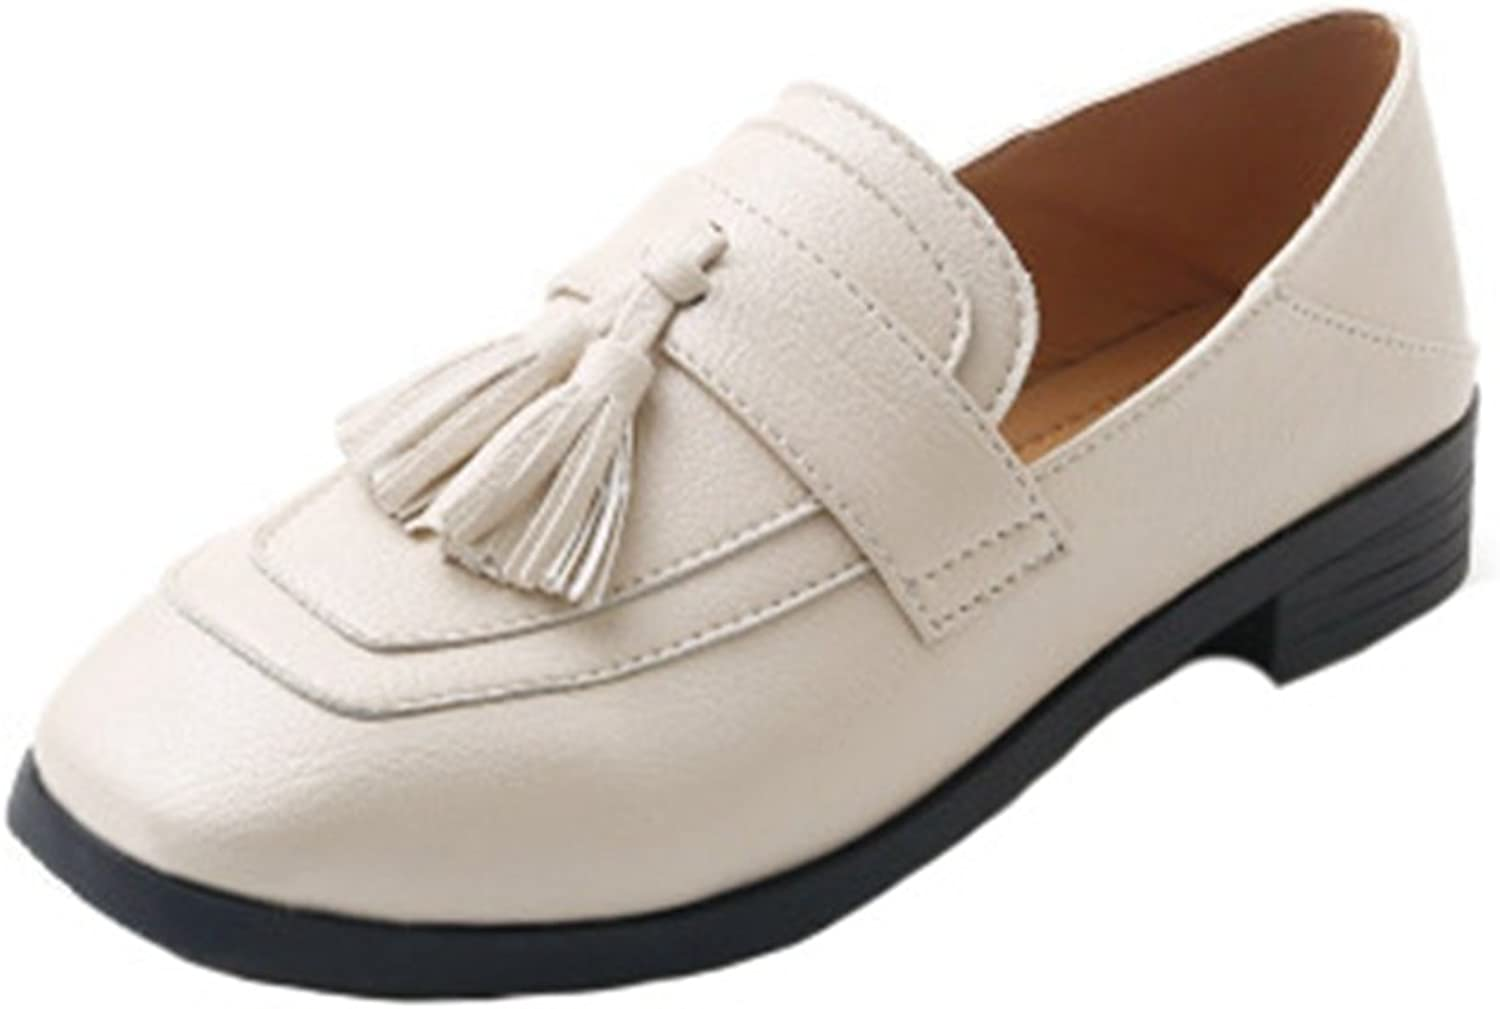 GIY Women's Classic Penny Loafers Tassel Flat Moccasin Square Toe Slip-On Casual Dress Loafer Oxford shoes